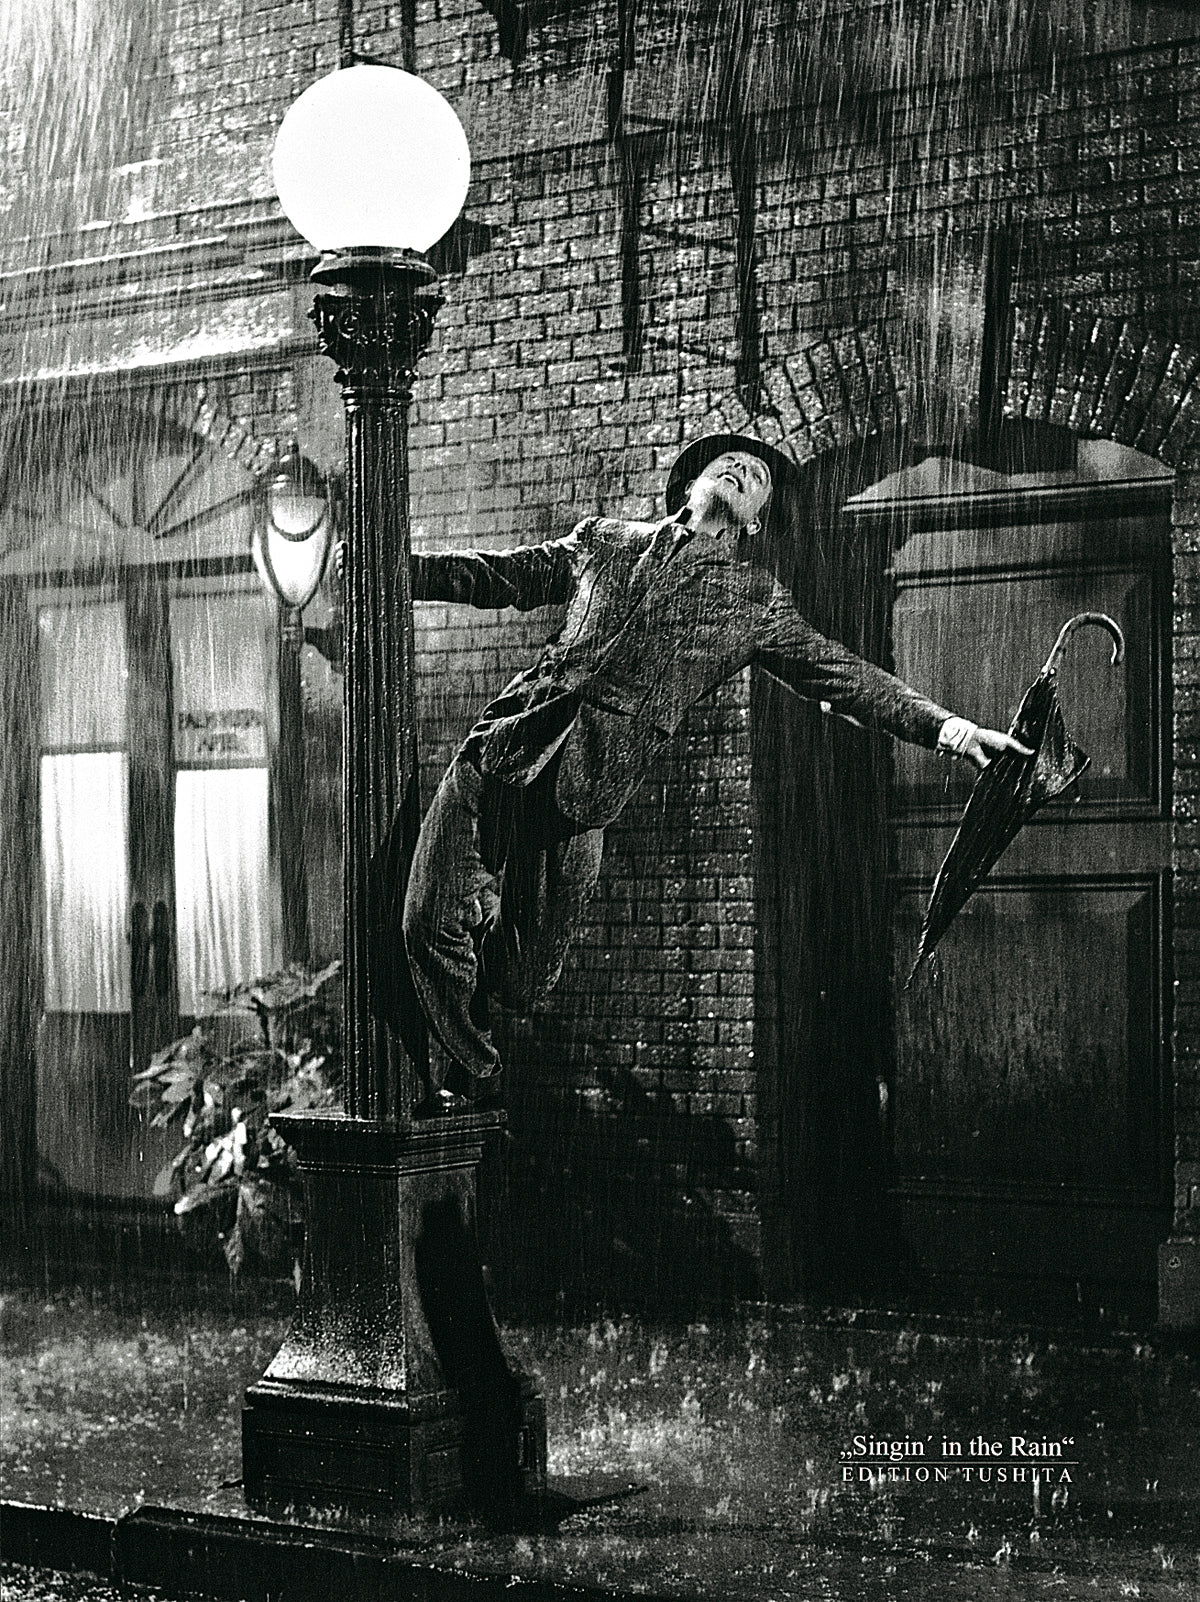 Liby - Gene Kelly singing in the Rain